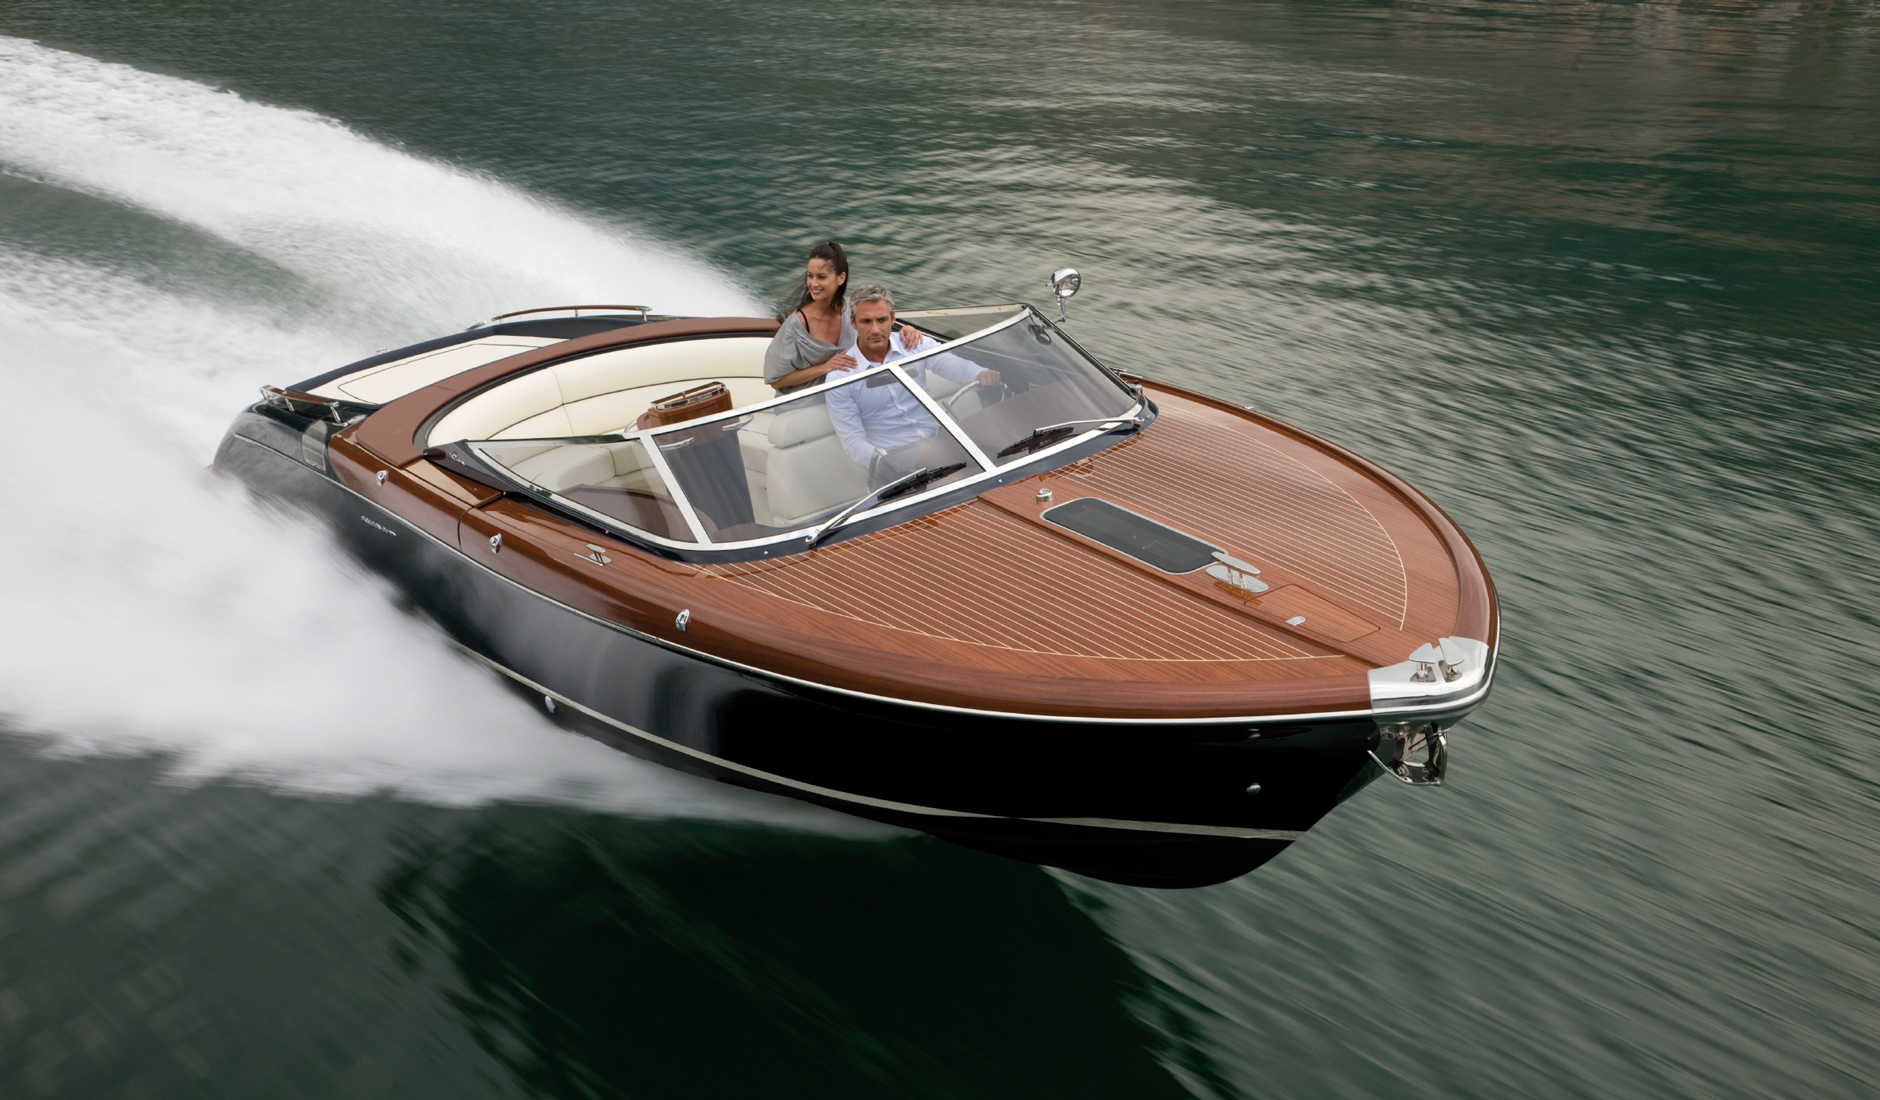 RIVA AQUARIVA SUPER 2019 год Фото  10